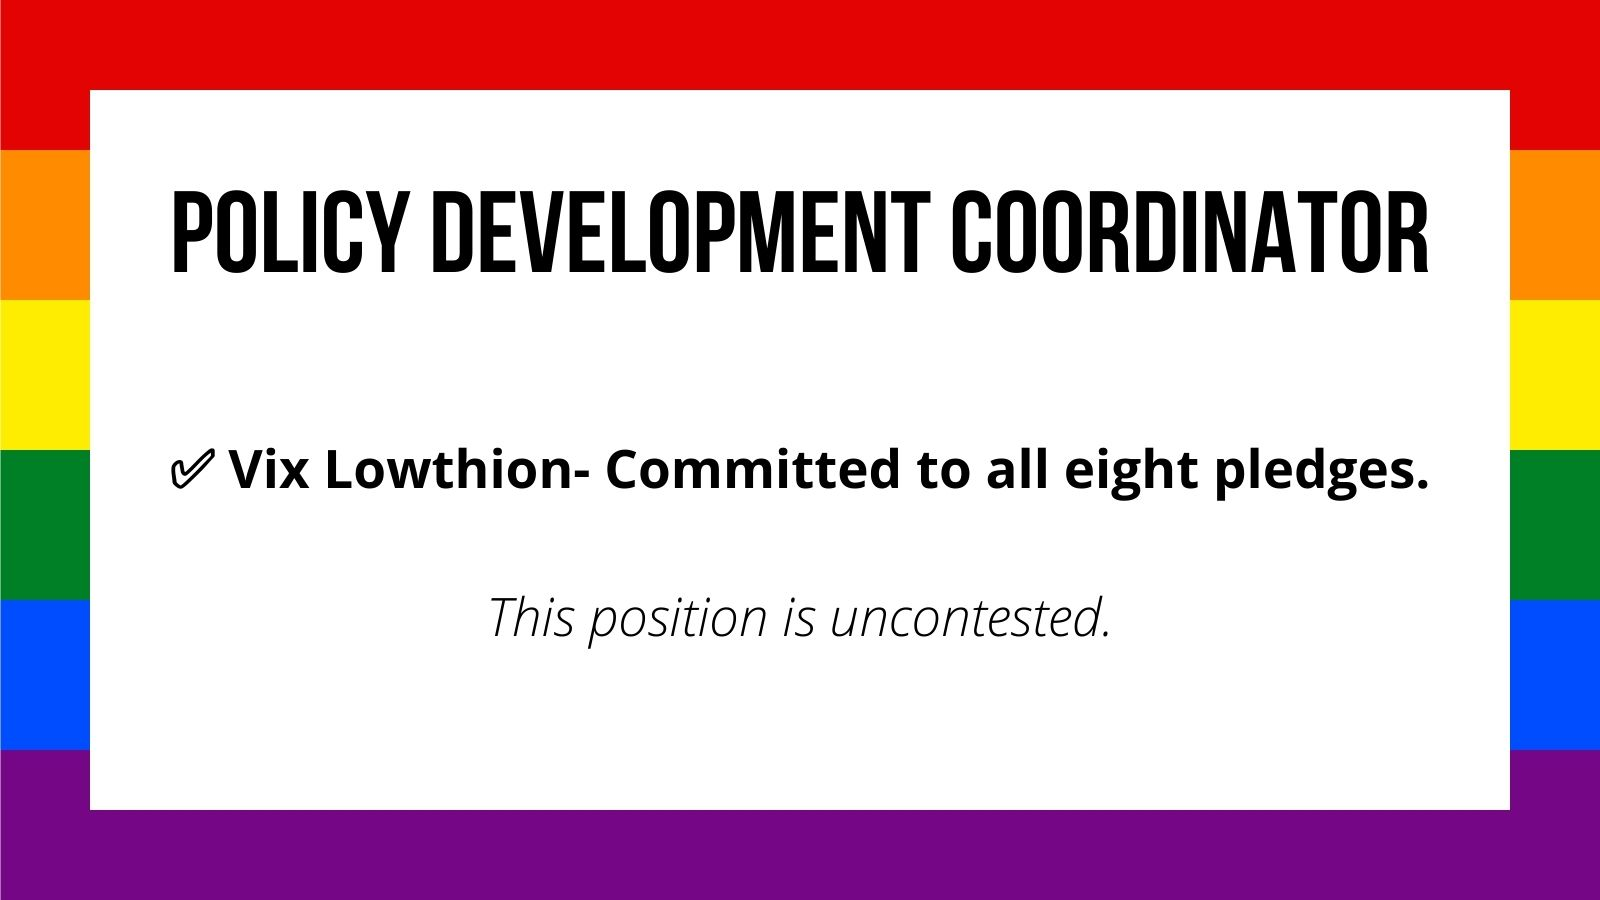 Policy Development Coordinator Vix Lowthion- Committed to all eight pledges. ✅ This position is uncontested.